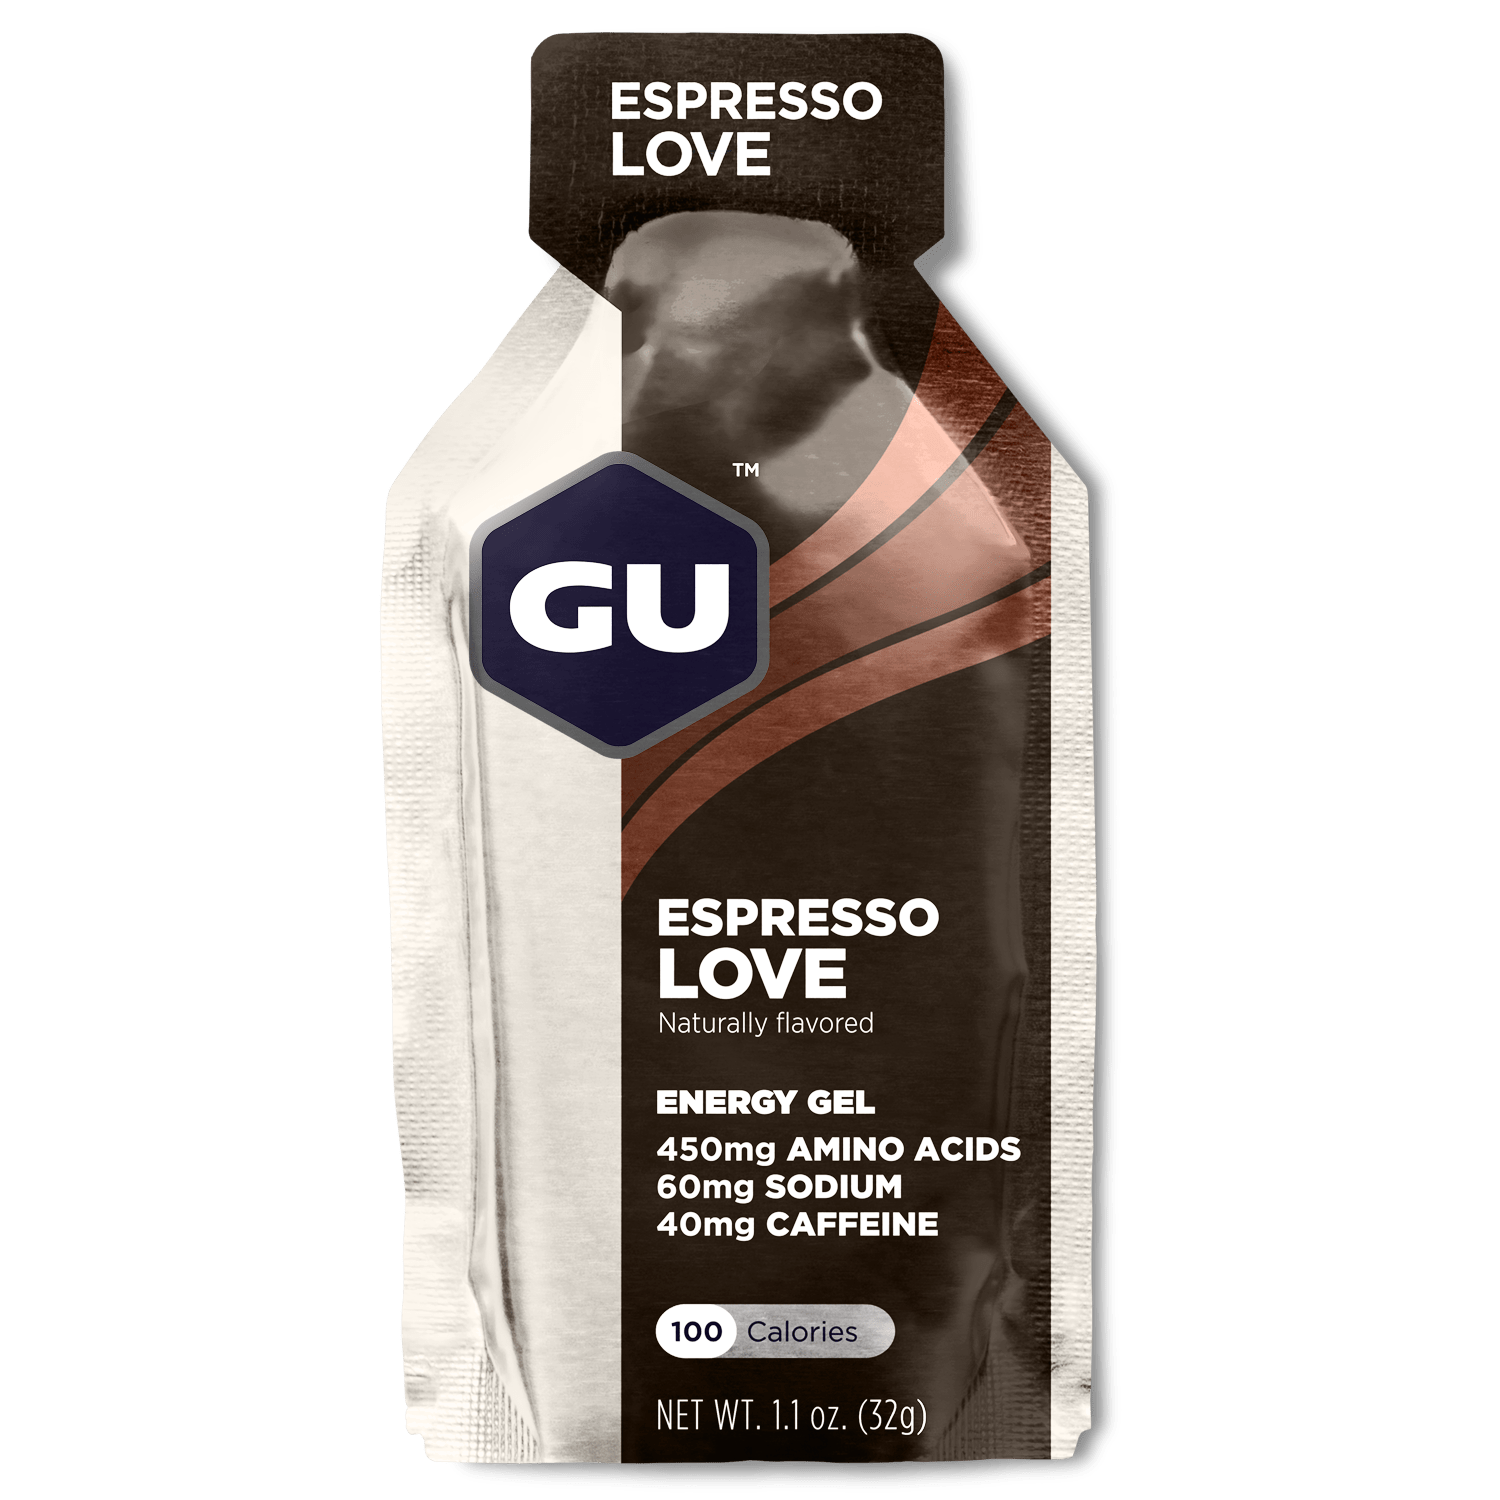 GU Sports Nutrition Espresso Love / 24 Count Box GU Original Sports Nutrition Energy Gel - Various Flavors